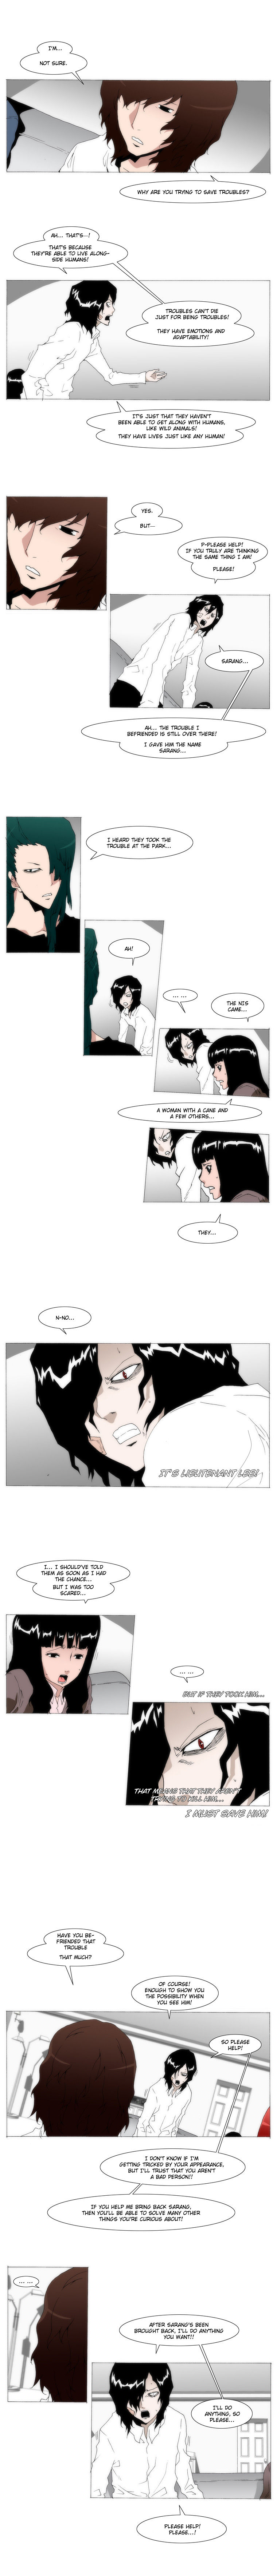 Trace 1.5 26 Page 2